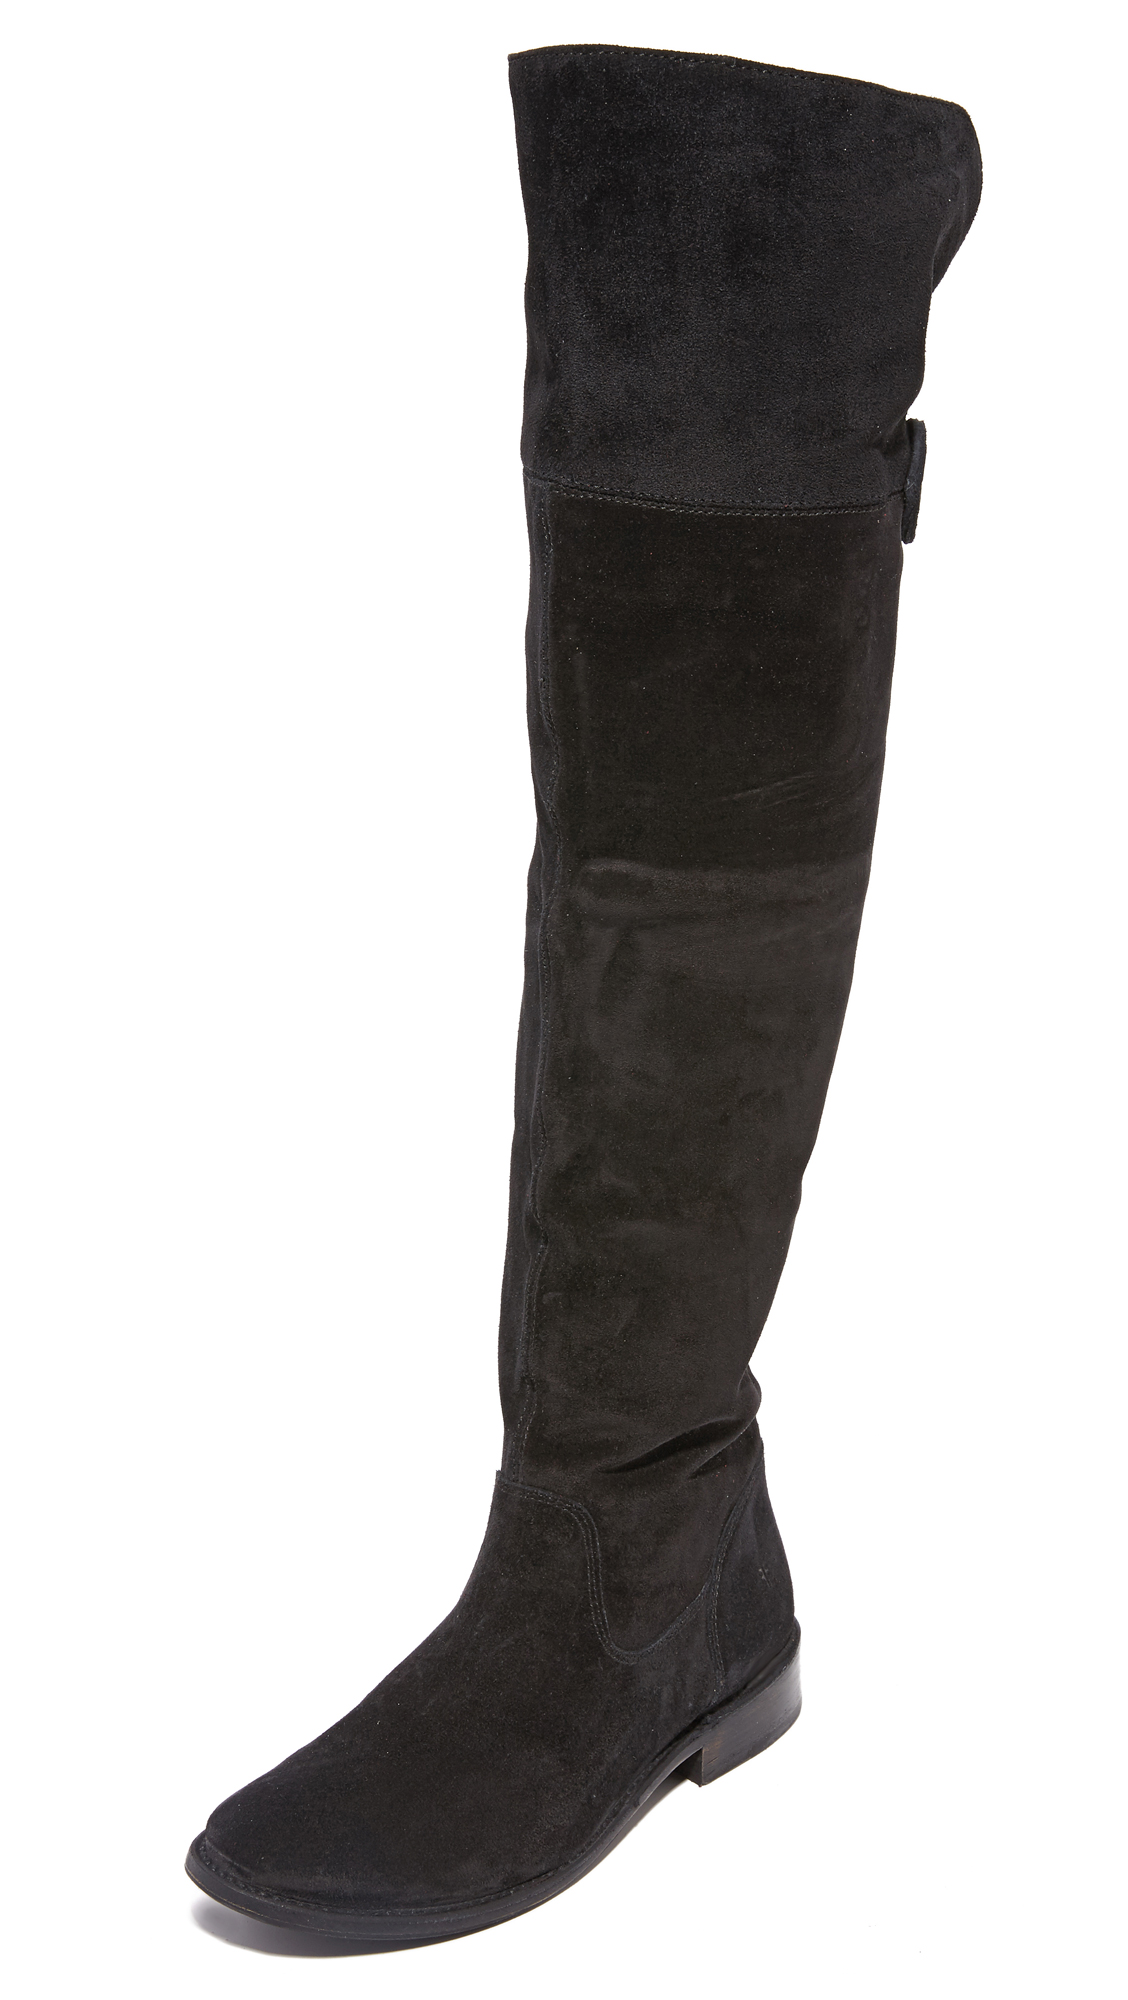 Frye Shirley Over The Knee Boots - Black